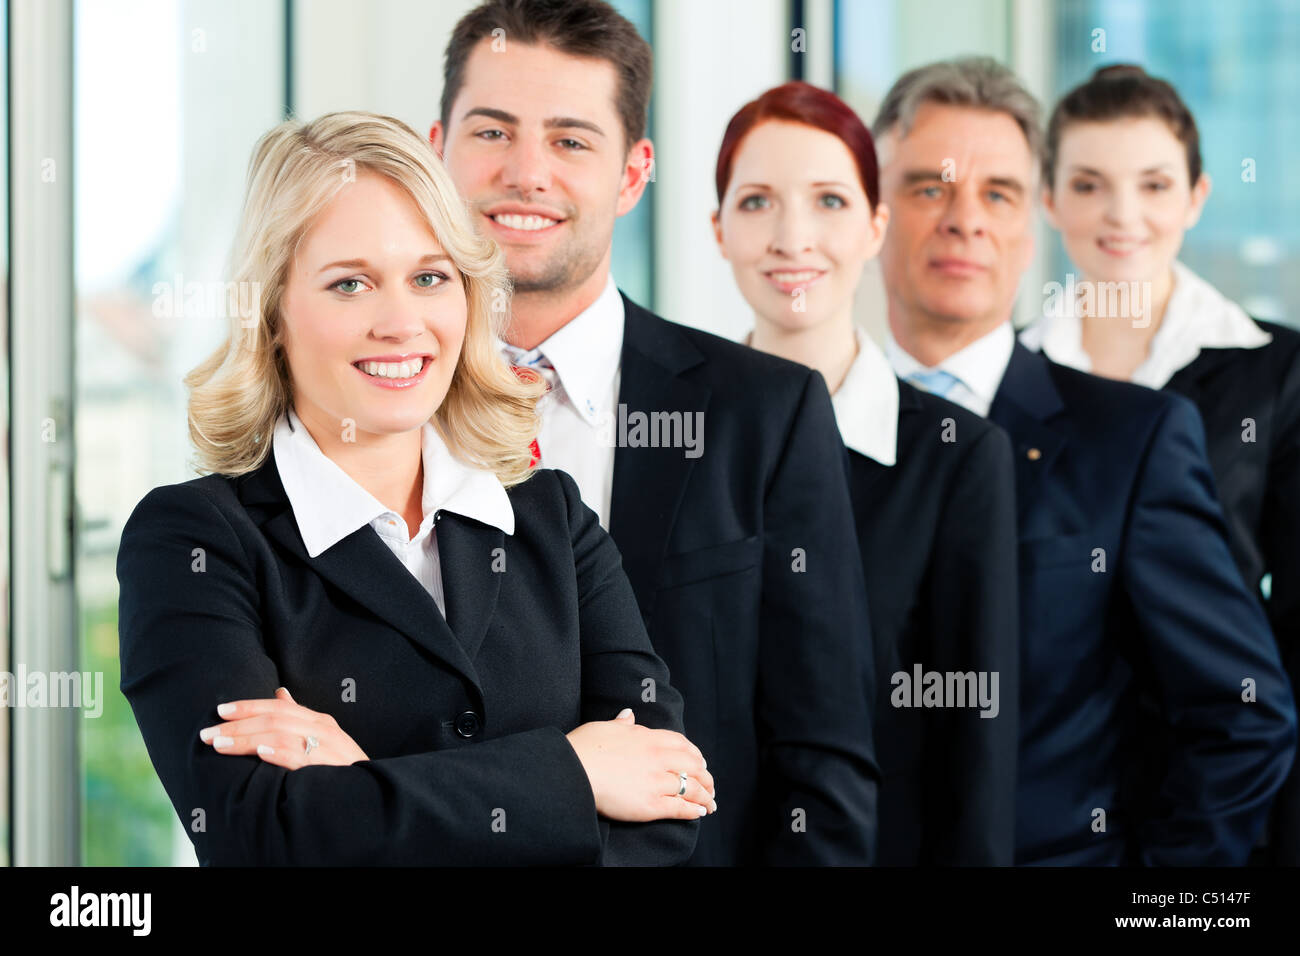 Business - team in an office; five colleagues or professionals in a row - Stock Image